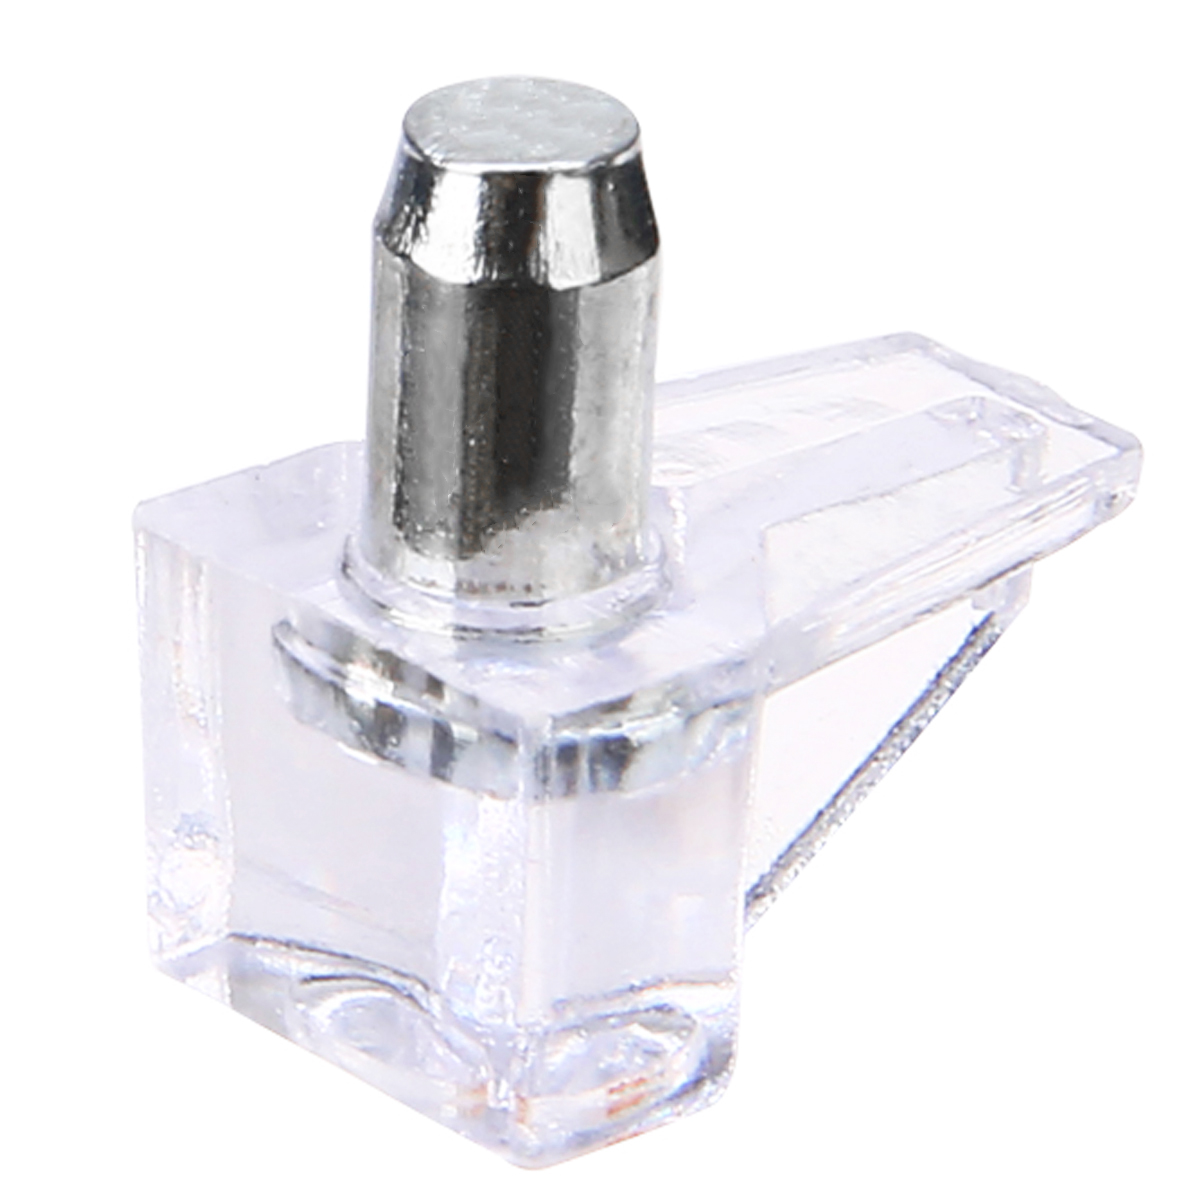 GLASS SHELF SUPPORT WITH PLASTIC COLLAR M5 5mm STUD METAL PEGS KITCHEN